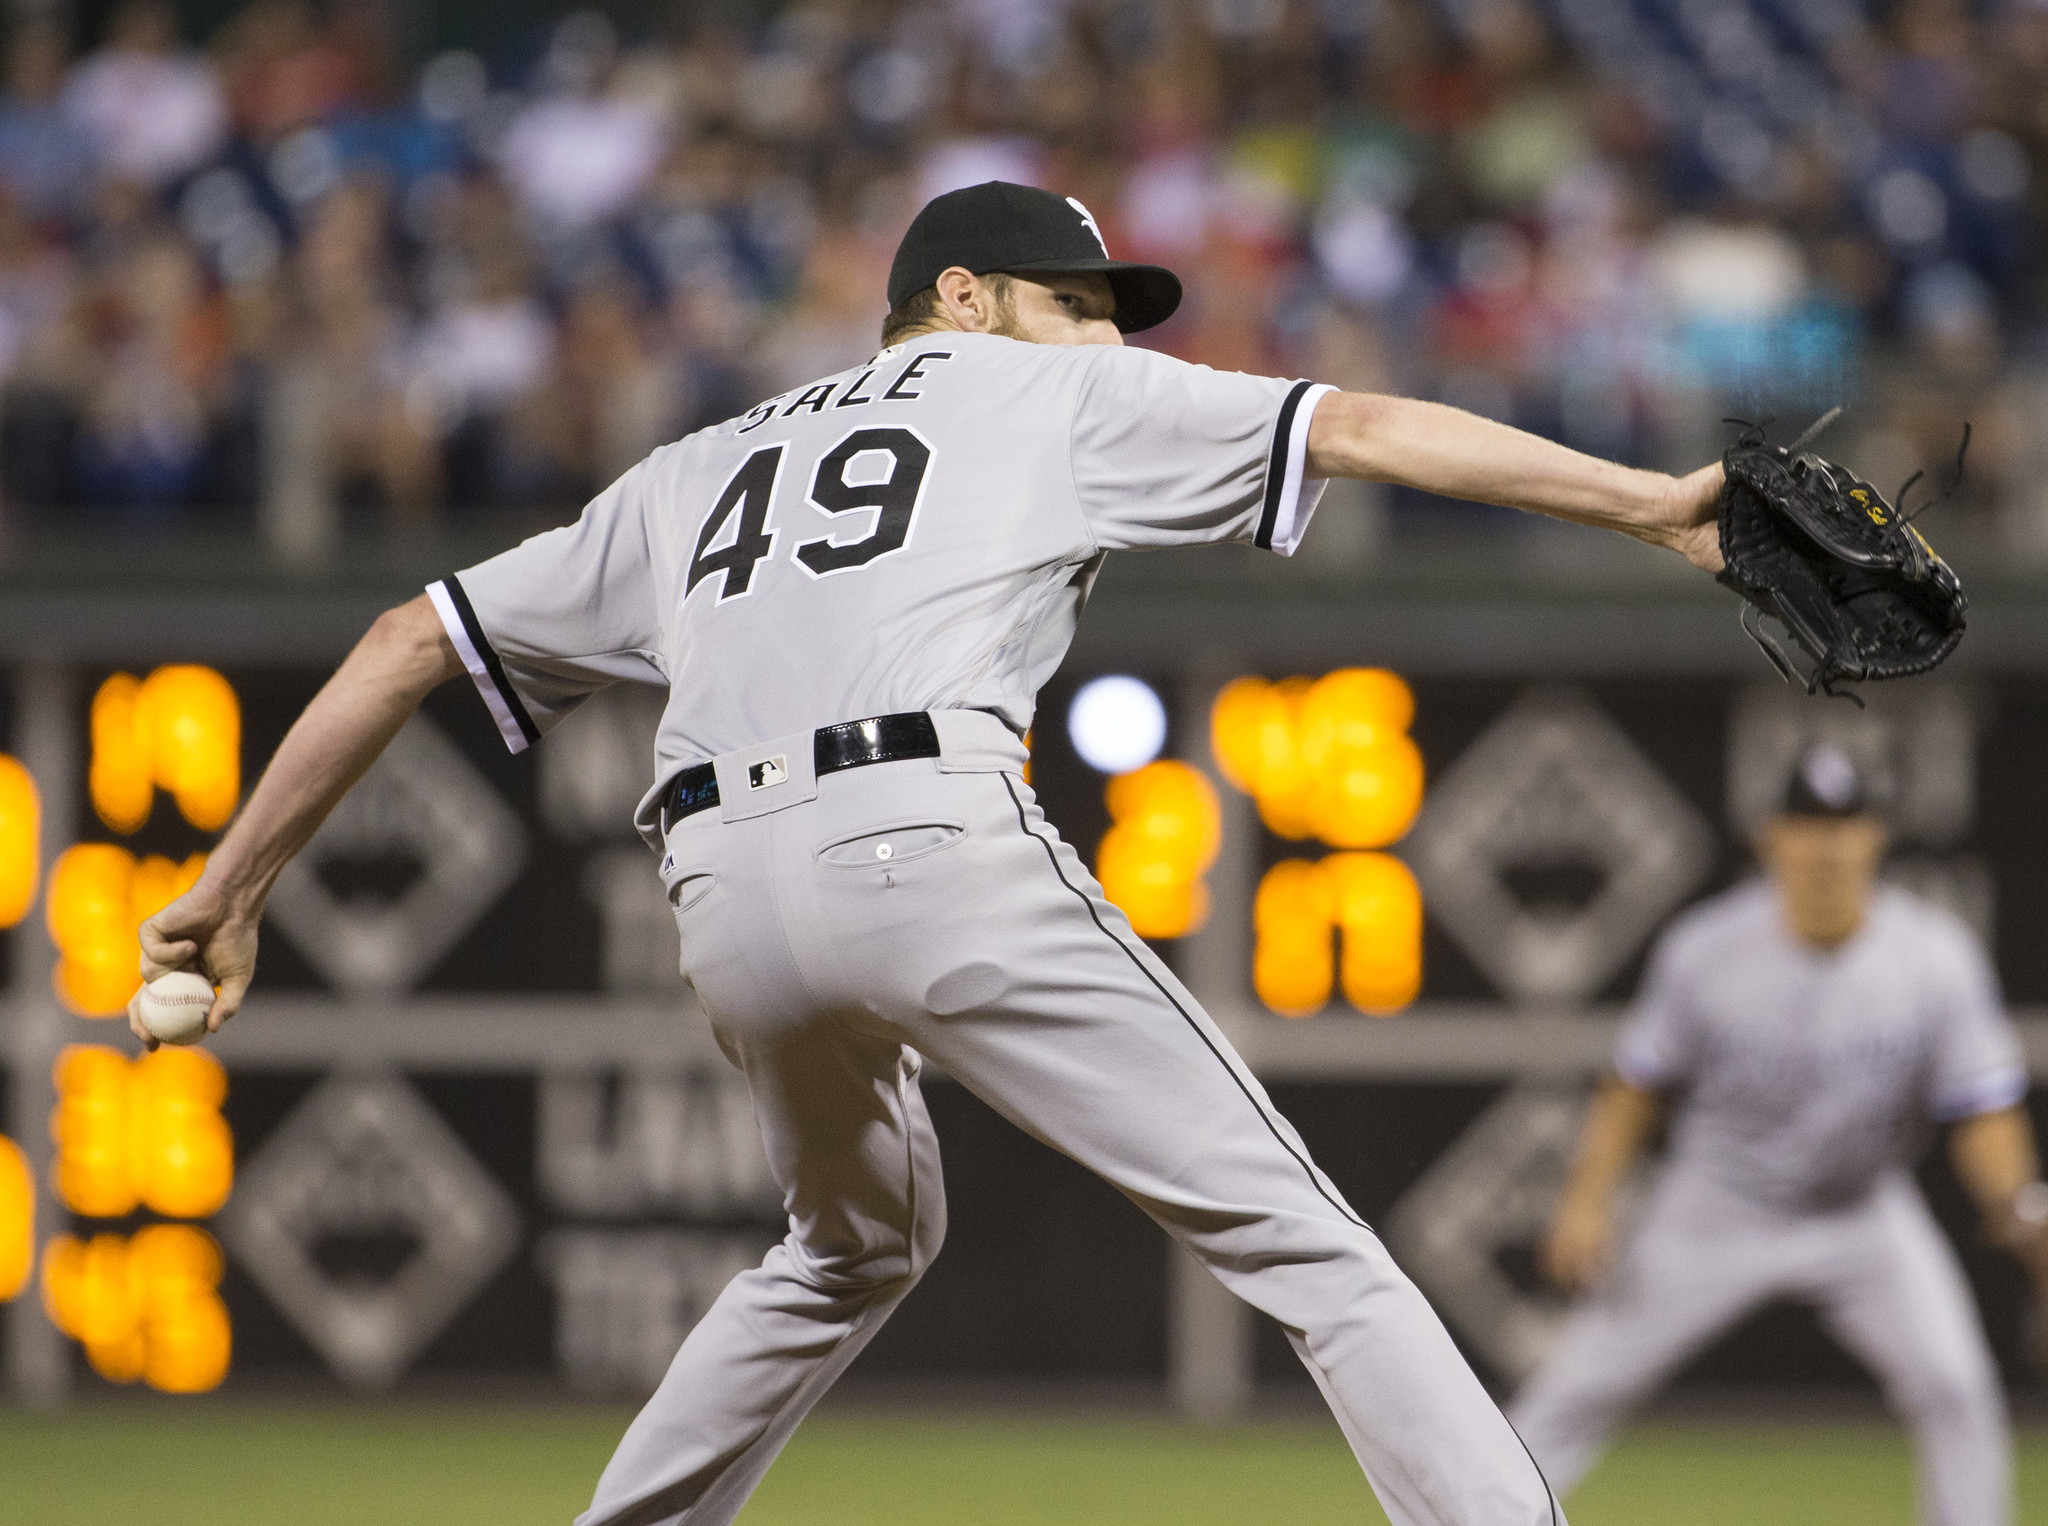 Ct-chris-sale-bad-outing-white-sox-spt-0922-20160921